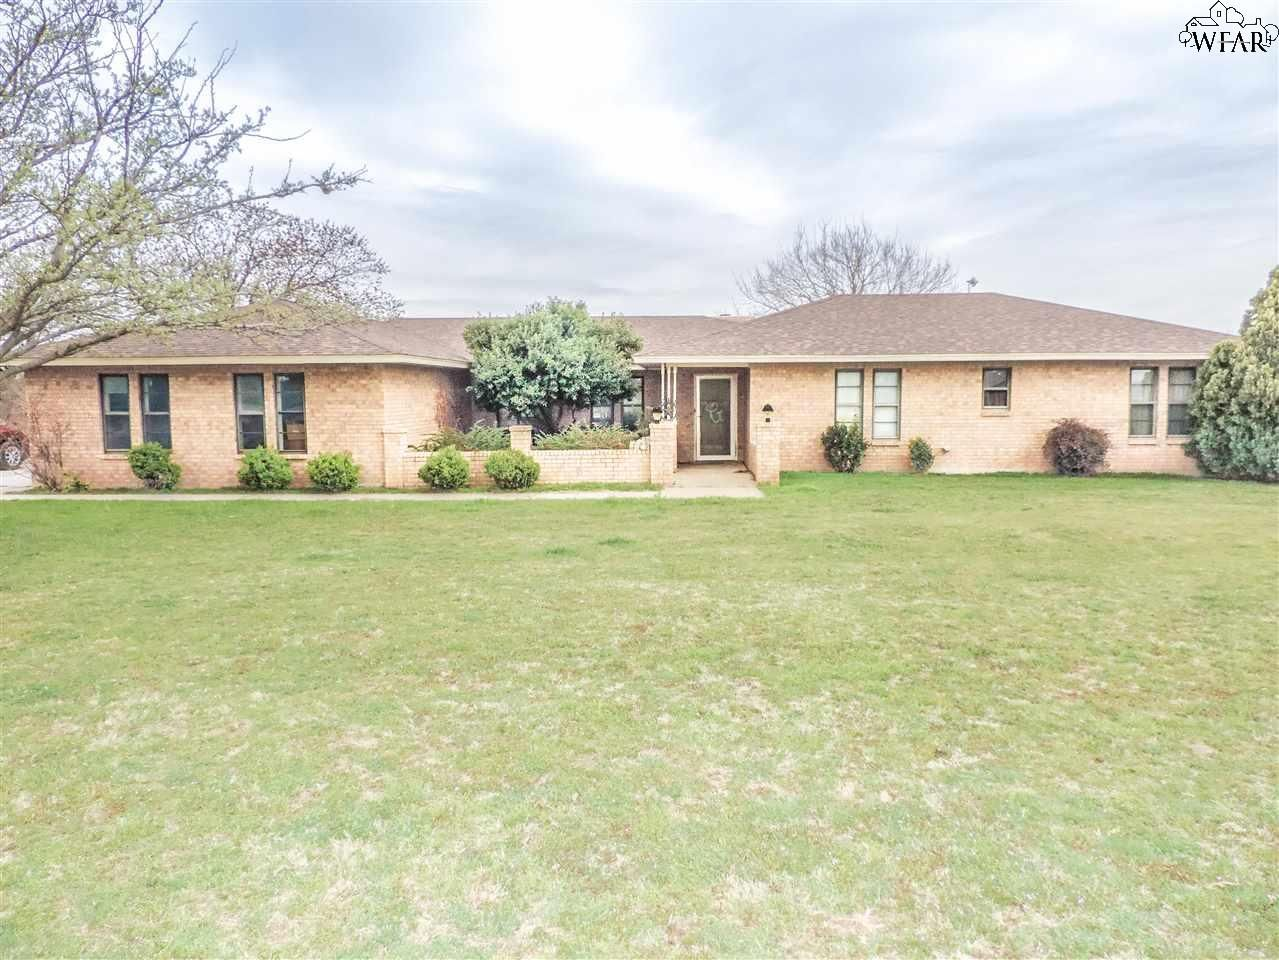 Texas archer county holliday 76366 - 255 E Little Lease Rd